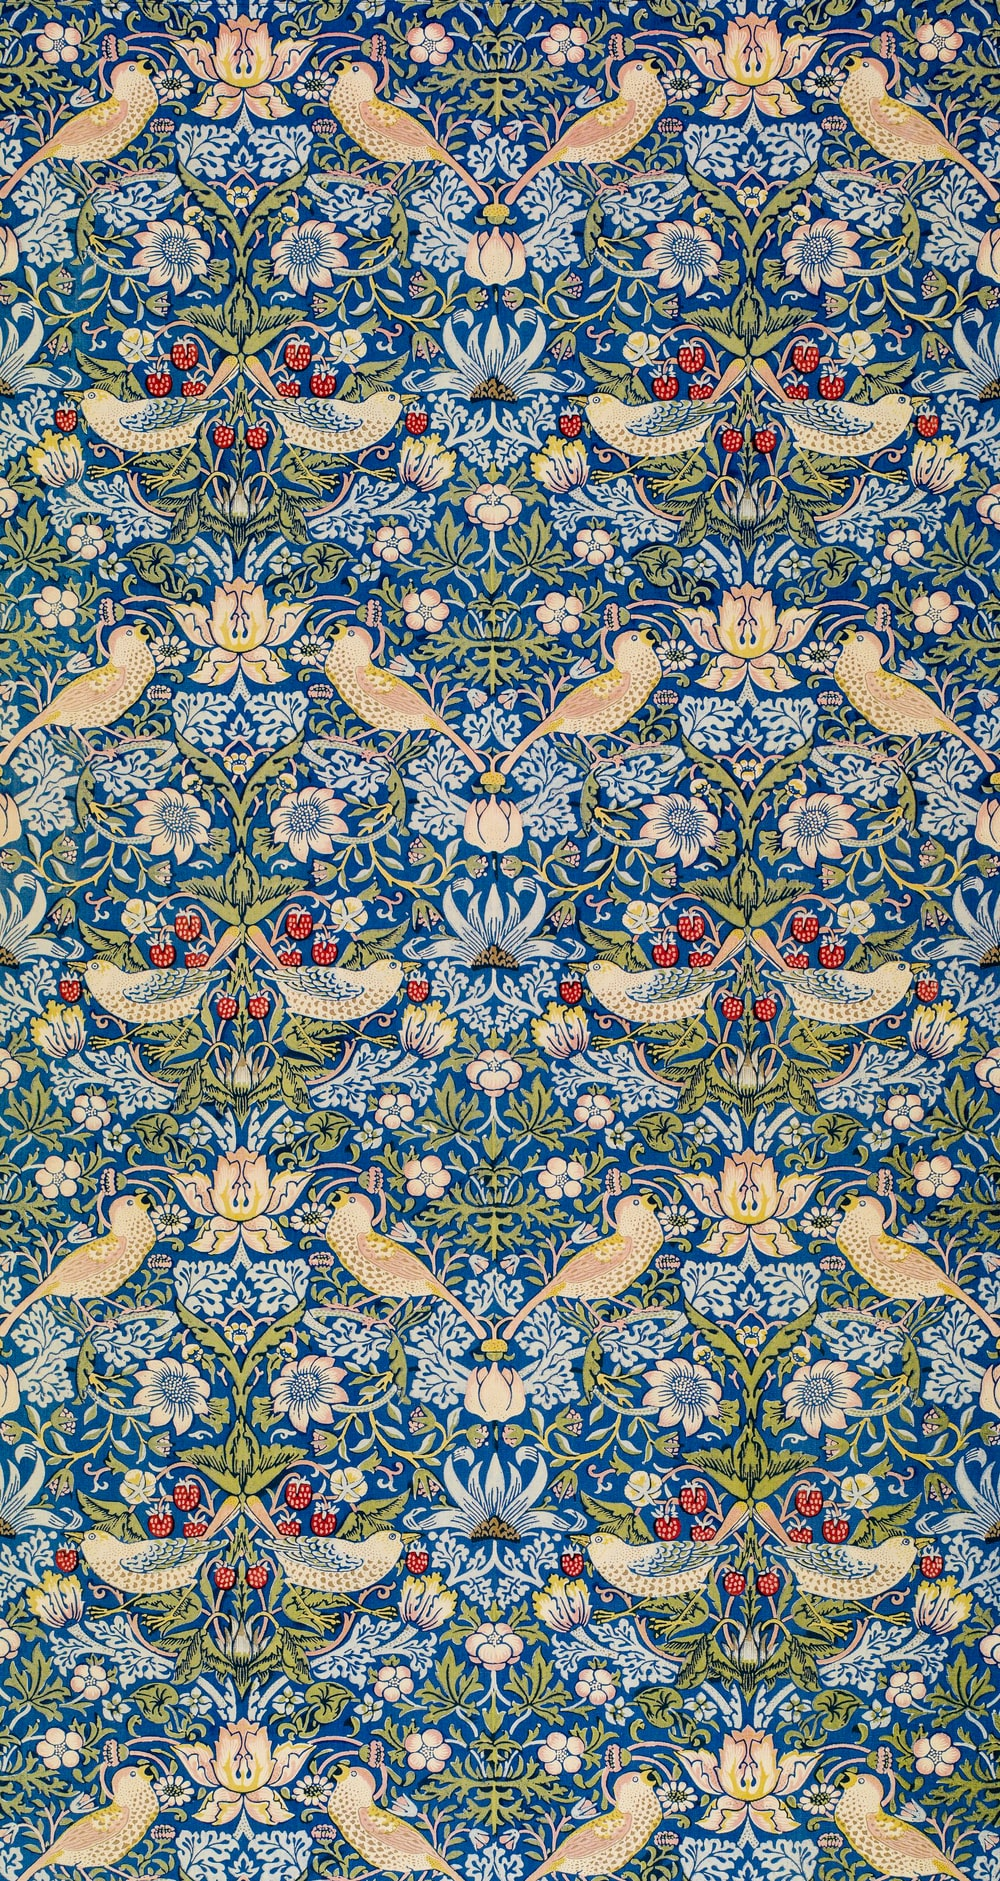 blue white and brown floral textile